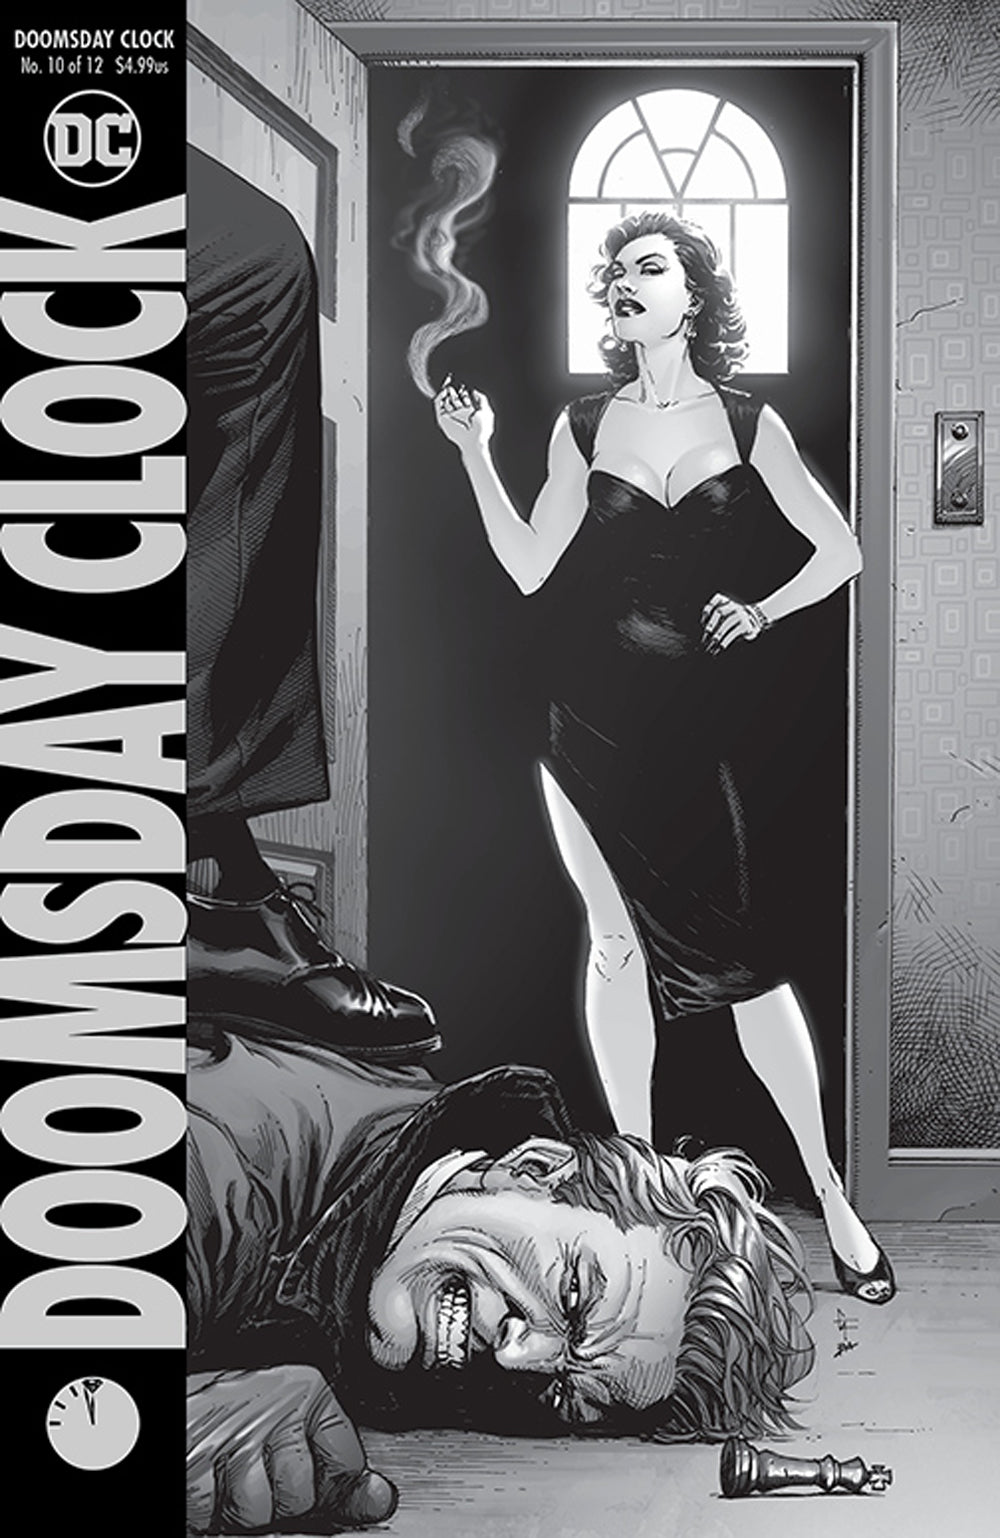 DOOMSDAY CLOCK #10 (OF 12) | Game Master's Emporium (The New GME)